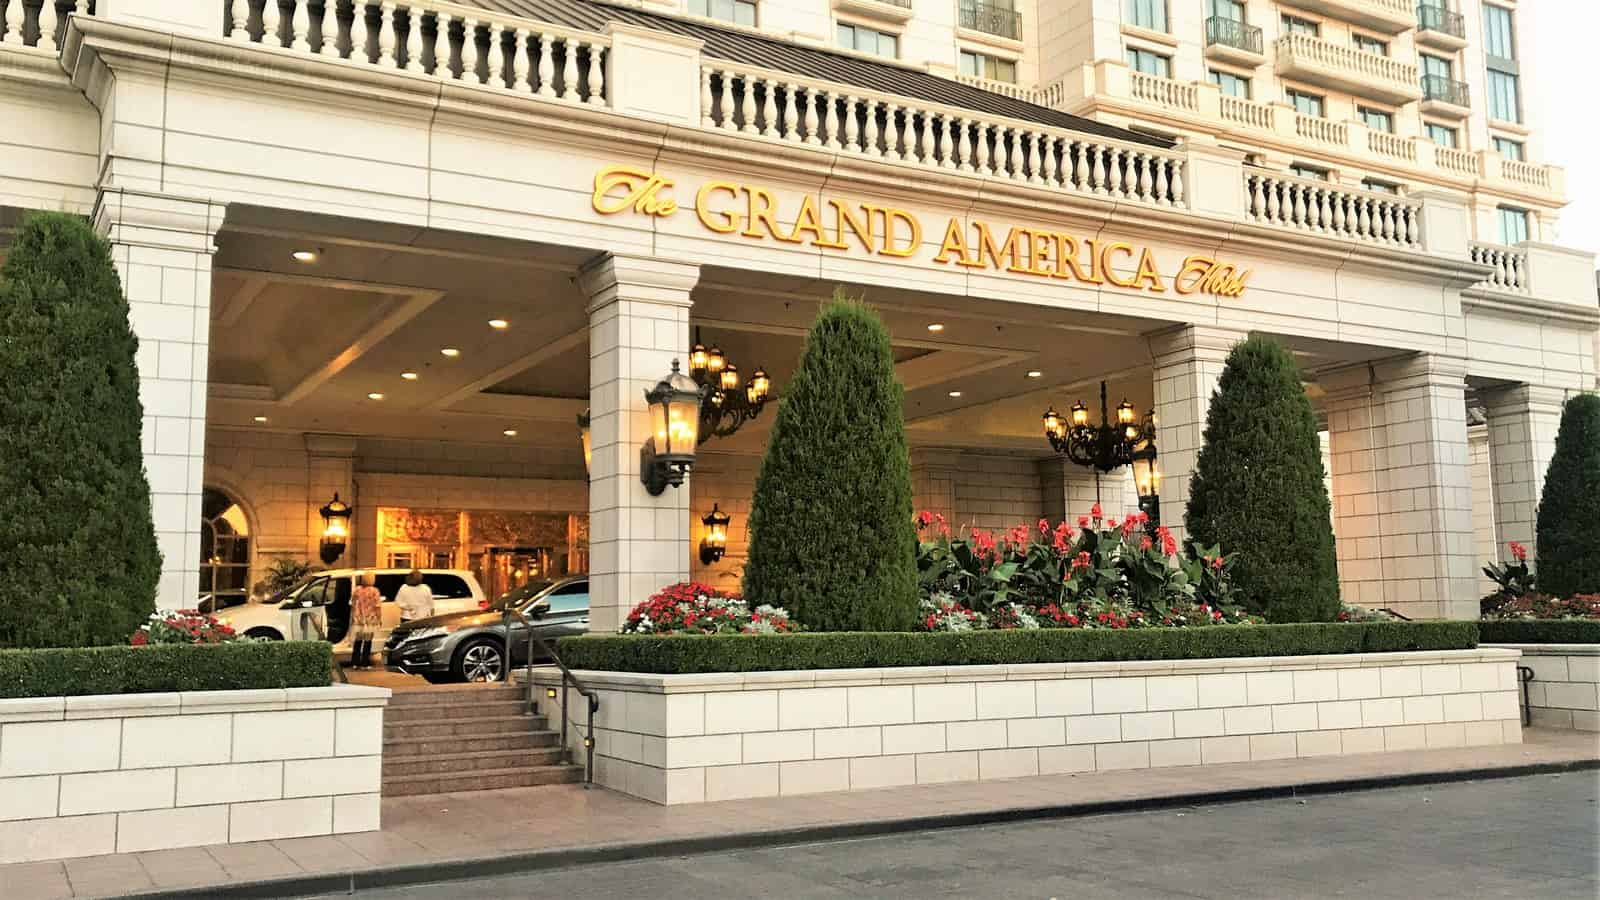 Grand America Hotel - Things to do in salt lake city